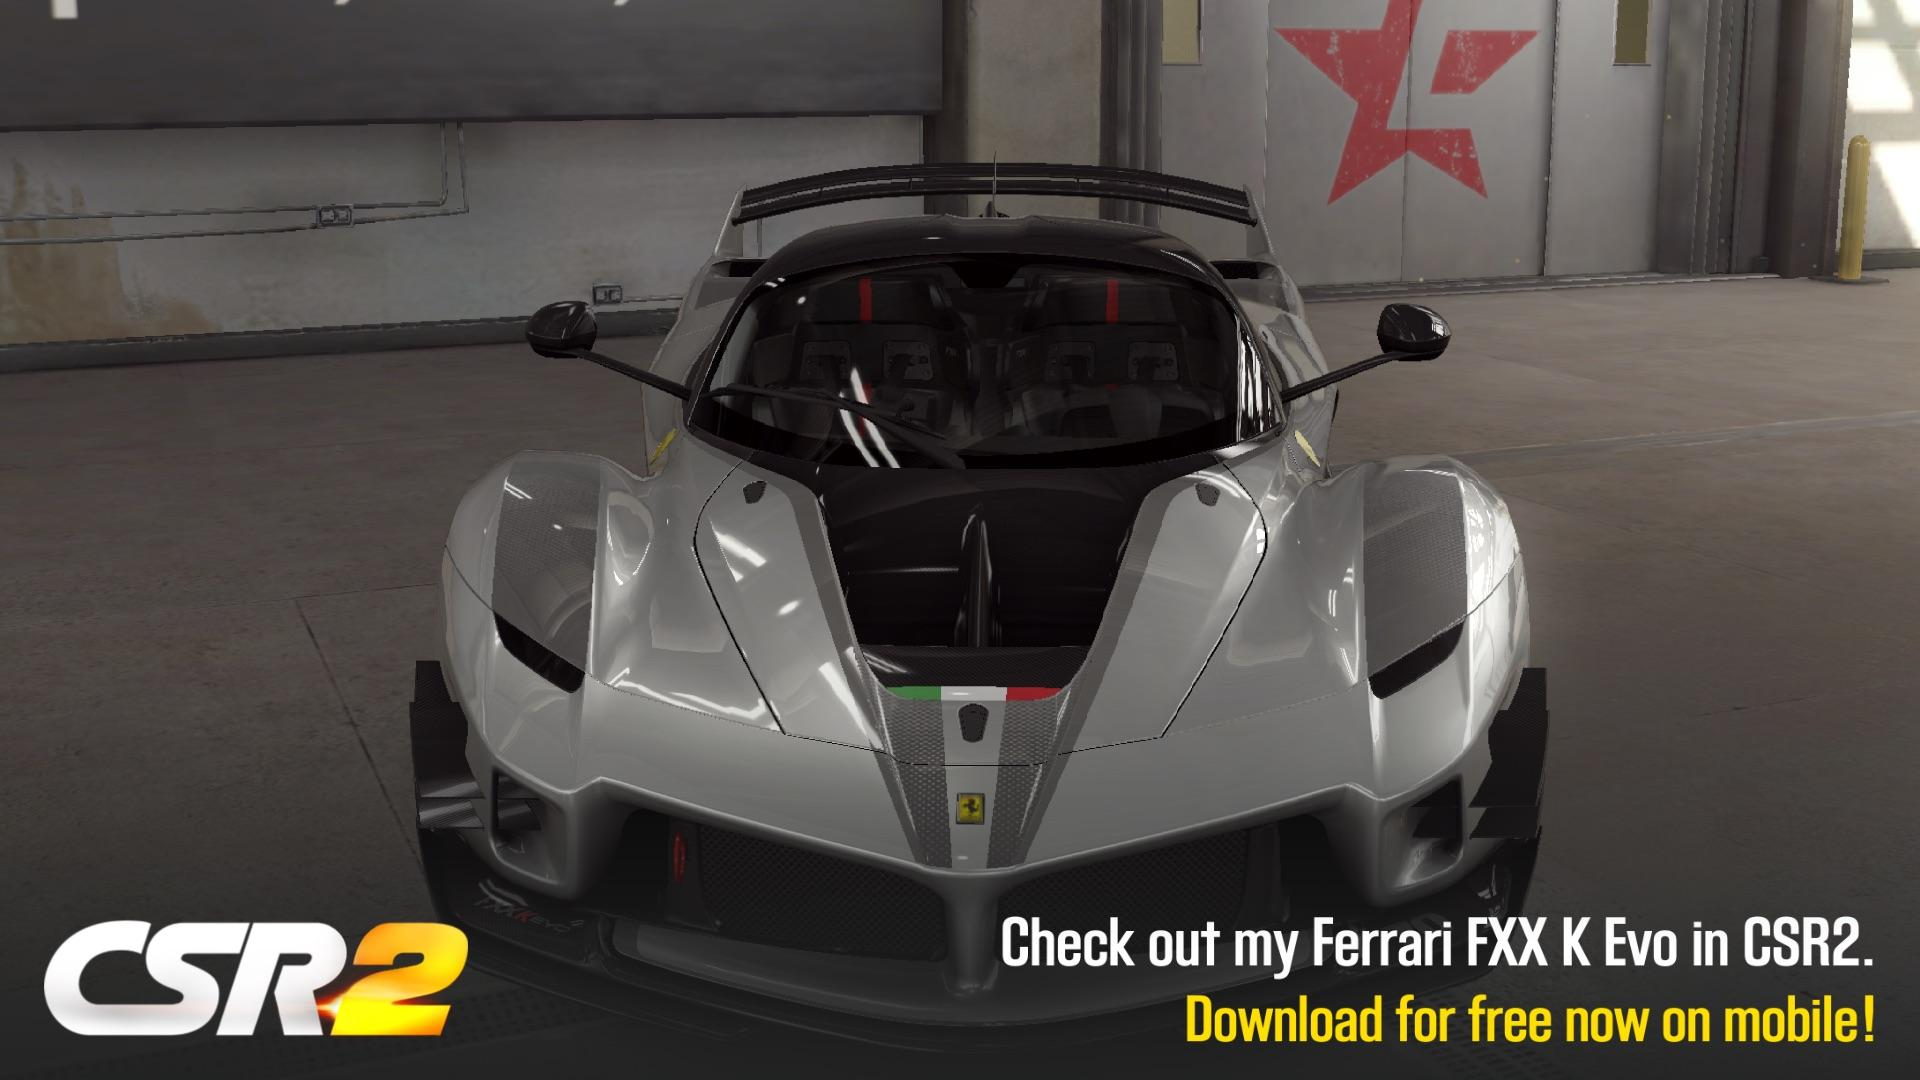 Ferrari Fxx K Evo Tune Shift Pattern S5 S6 Csr2boss